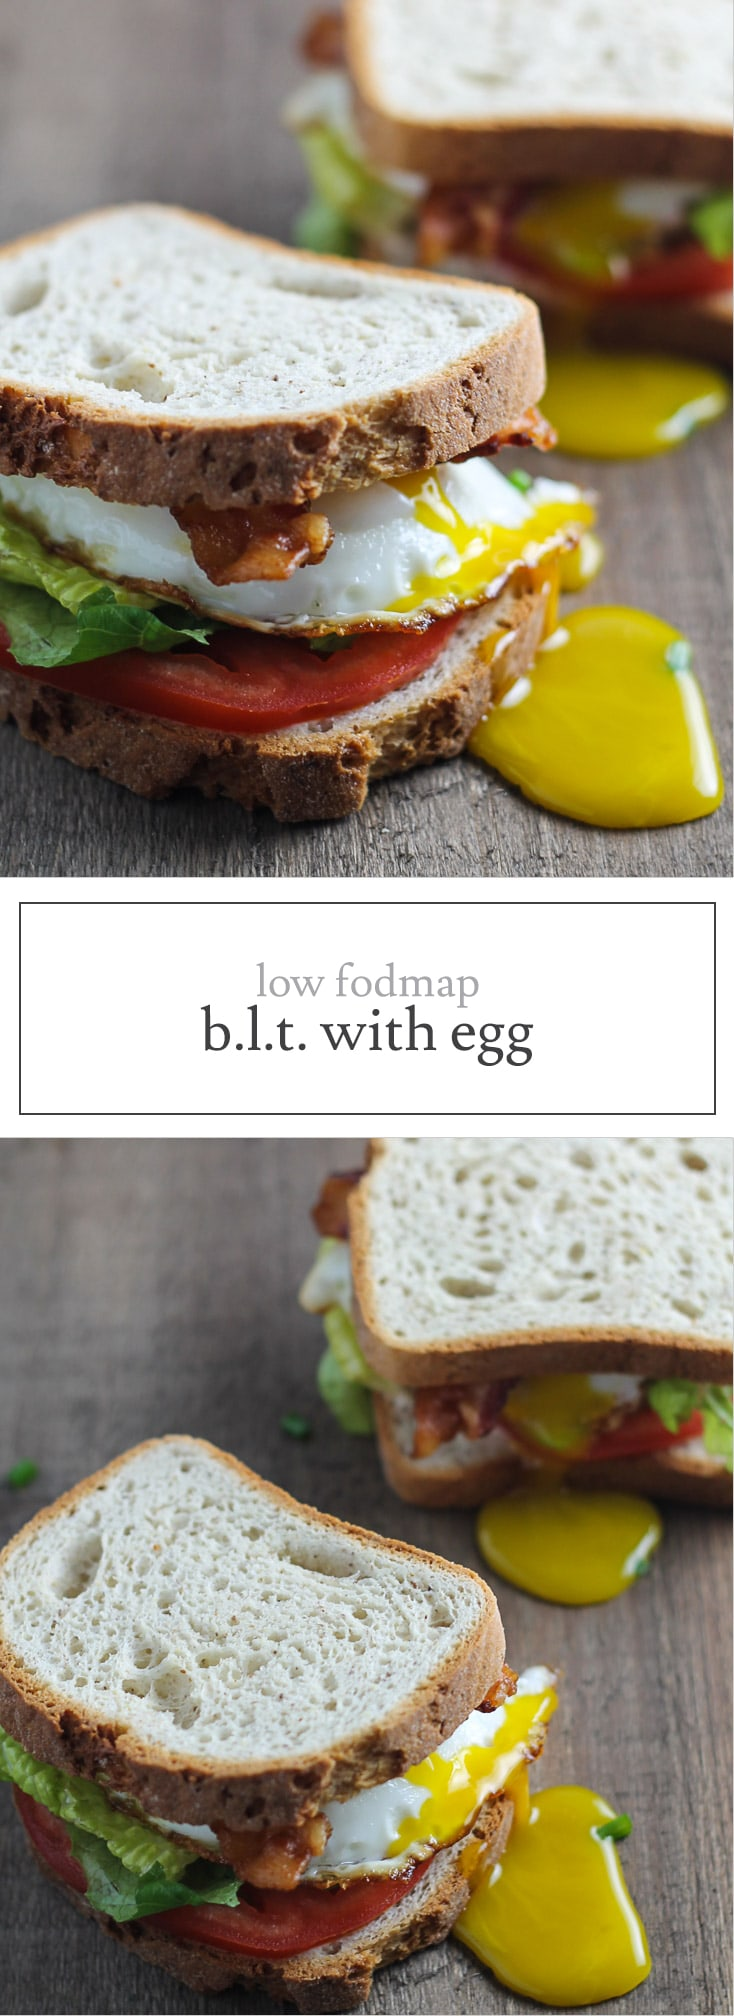 Need a quick and easy meal? This Low FODMAP BLT with Egg is your ticket! Delicious and gluten-free, this sandwich recipe is one of my go-to's: breakfast, lunch or dinner!